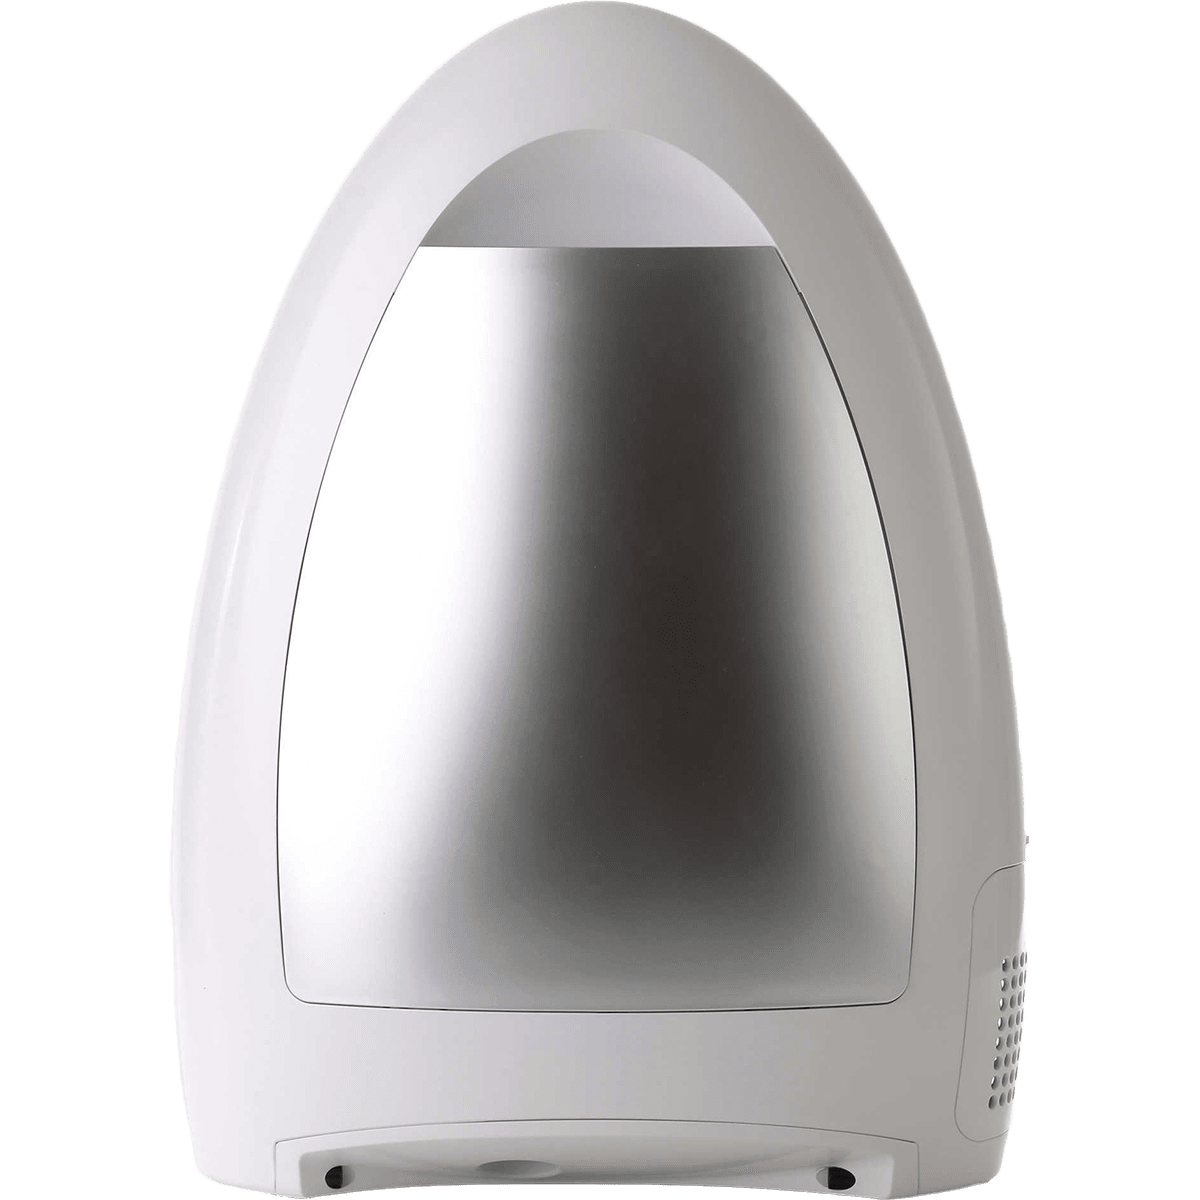 Air Barrier Touchless Design Ceo News Home Automation Control Your With A Single Touch Eieihome Eyevac Vacuum Designer White